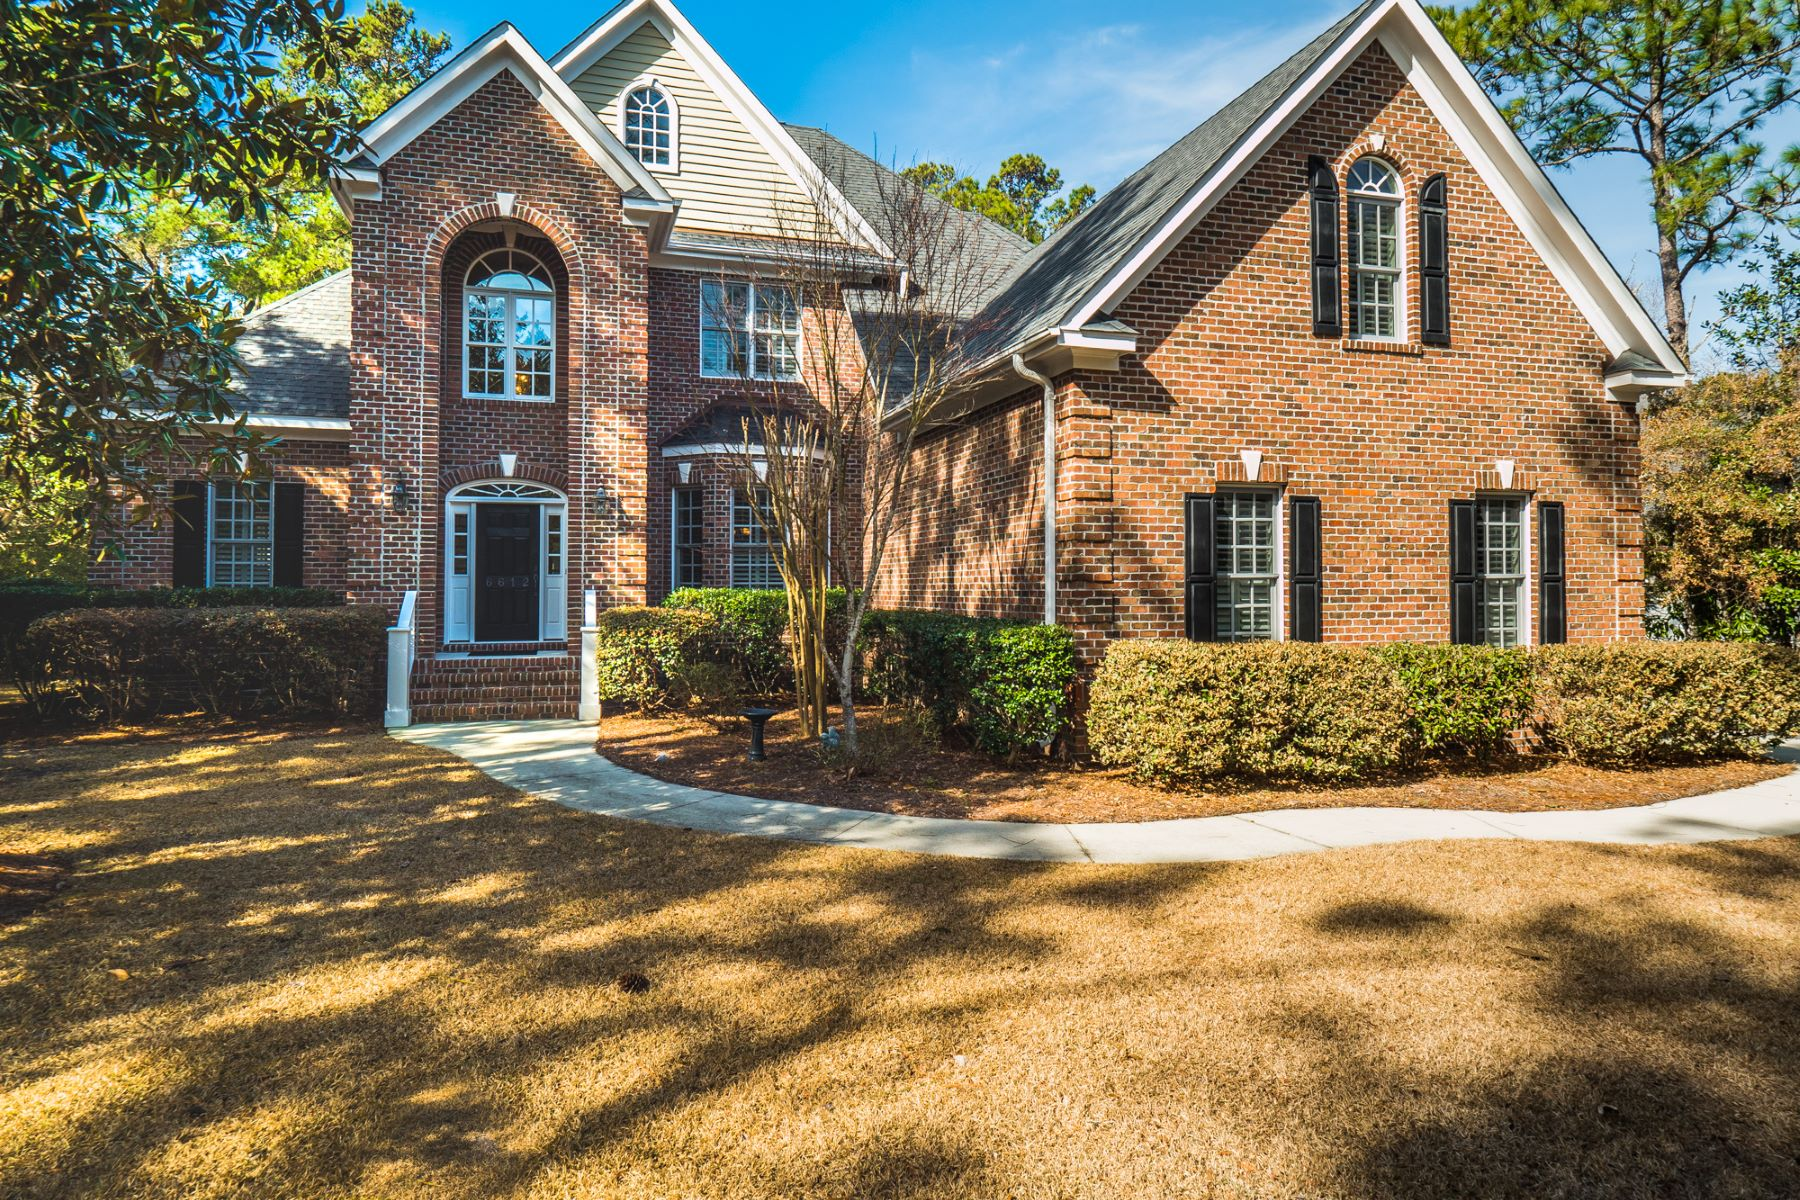 Single Family Home for Sale at Spacious Sophisticated Executive Home 6612 Cove Point Drive, Wilmington, North Carolina, 28409 United States